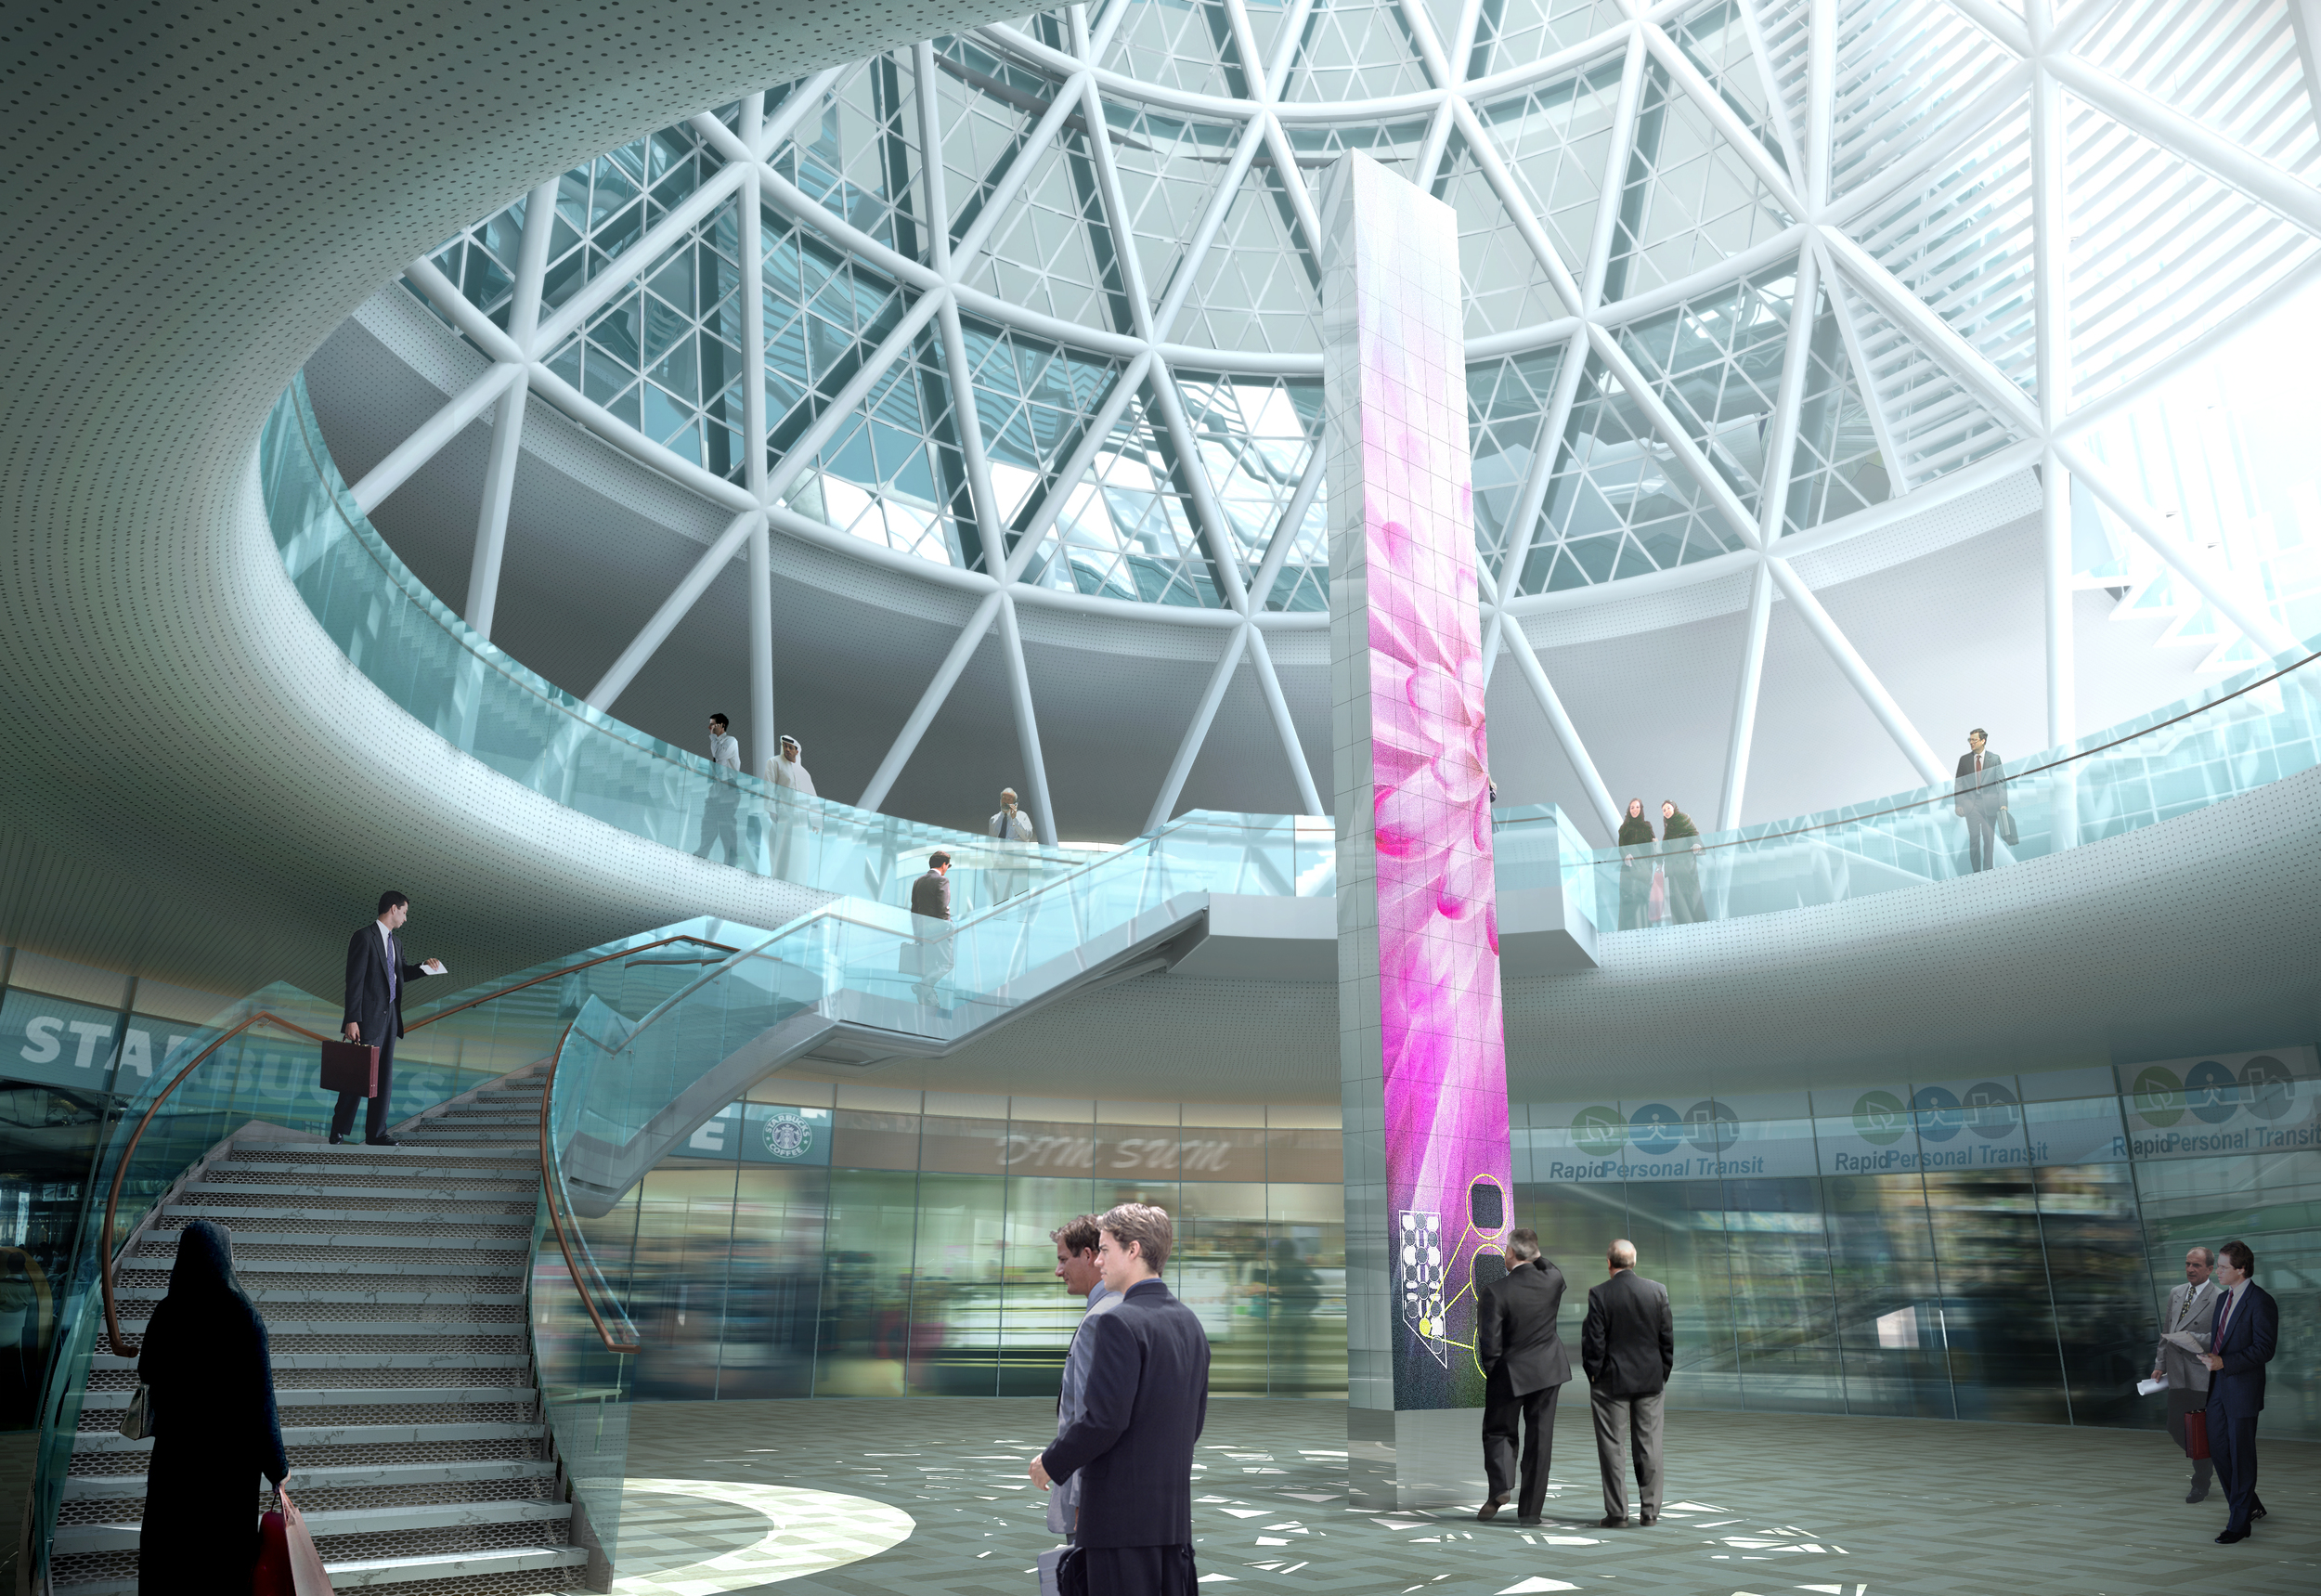 Rendering of Masdar Headquarters with digital signage